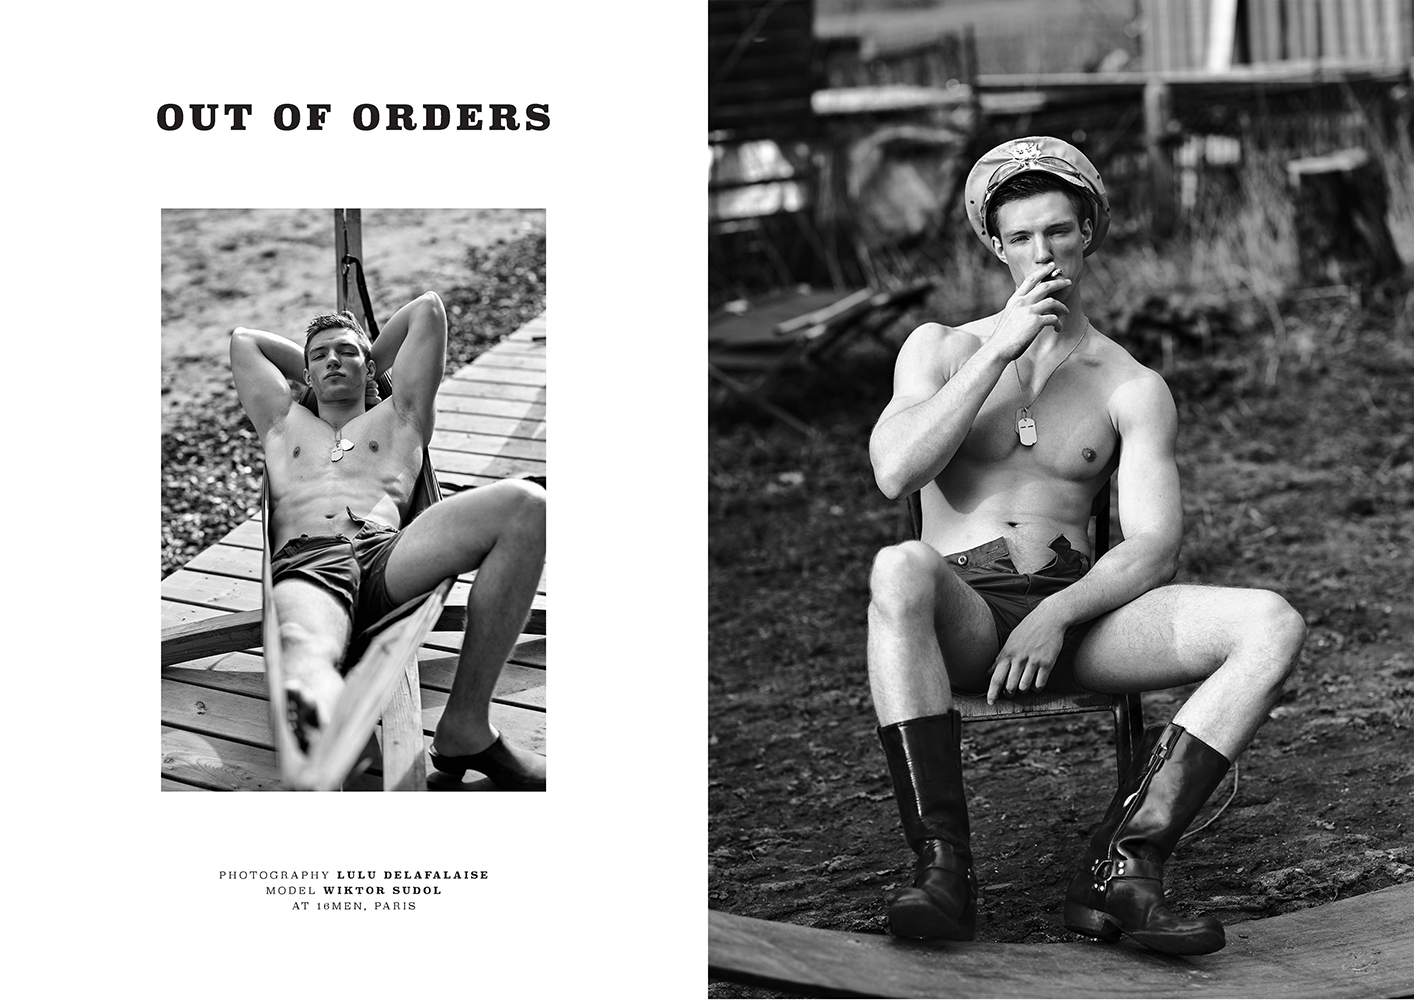 OUT OF ORDERS x LULU_Page_01 23.49.43.jpg